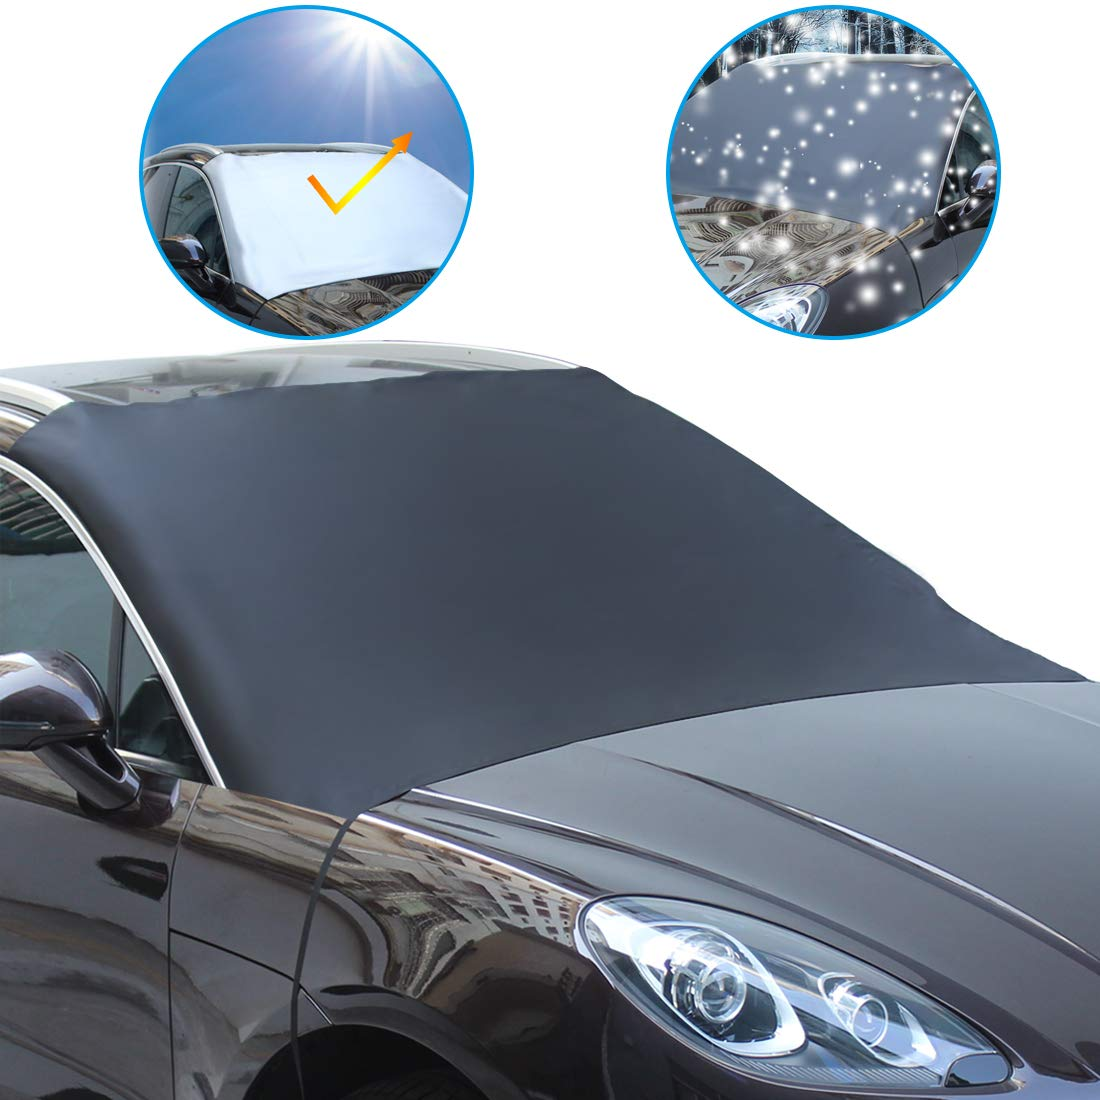 KMMIN Snow Cover Windproof Magnetic Ice Frost Sun Windshield Protector for Cars SUVS Trucks Vans with Easy Installation and Storage Bag